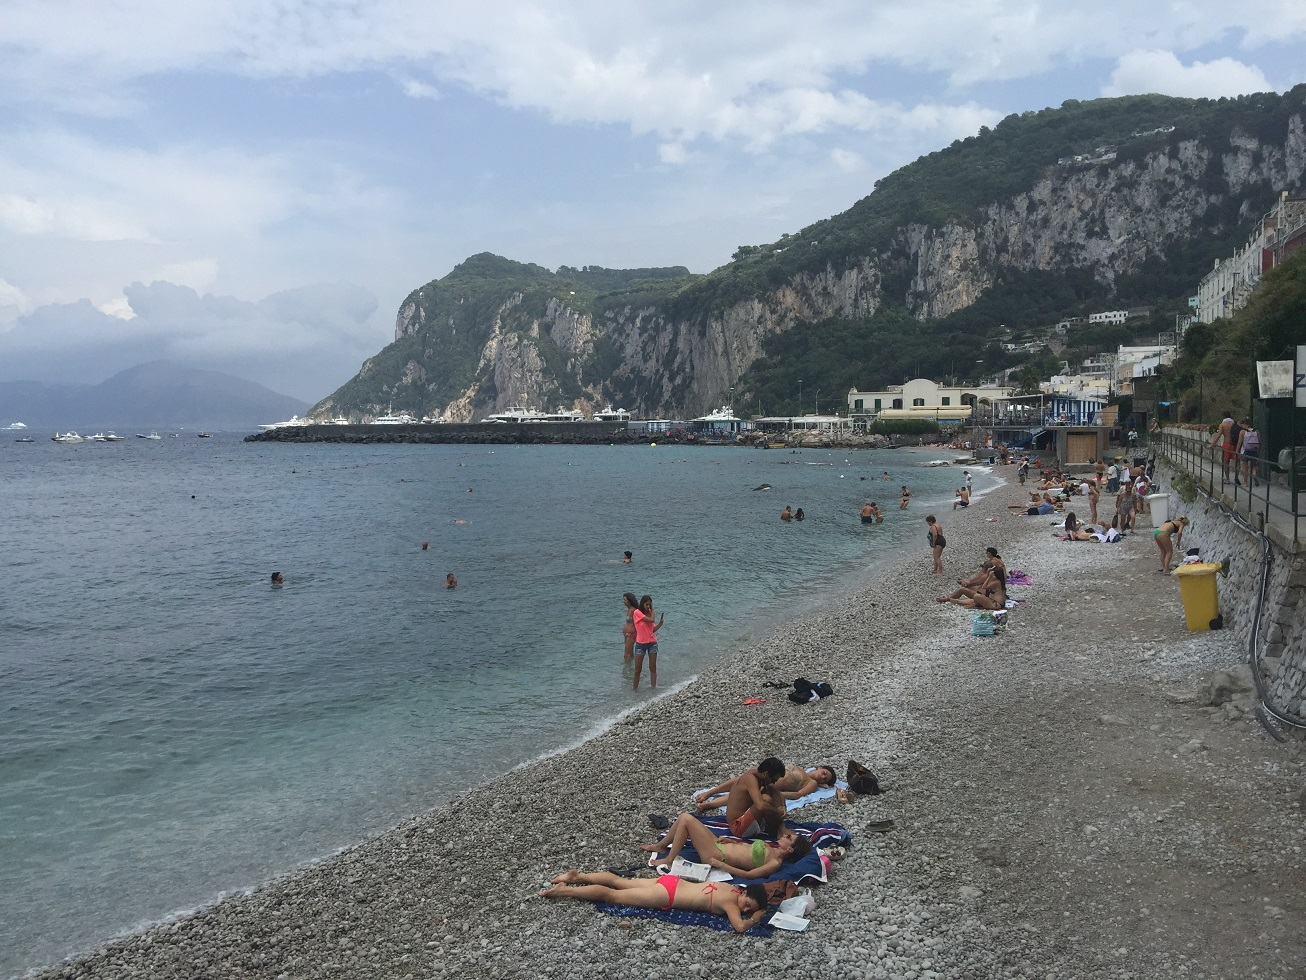 Coast of Capri, Study Art History in Italy, Why You Should Visit the Ancient Sunken City of Baia, jcu student trips, weekend trips in Italy, underwater archaeology, american universities in Rome, study abroad in italy